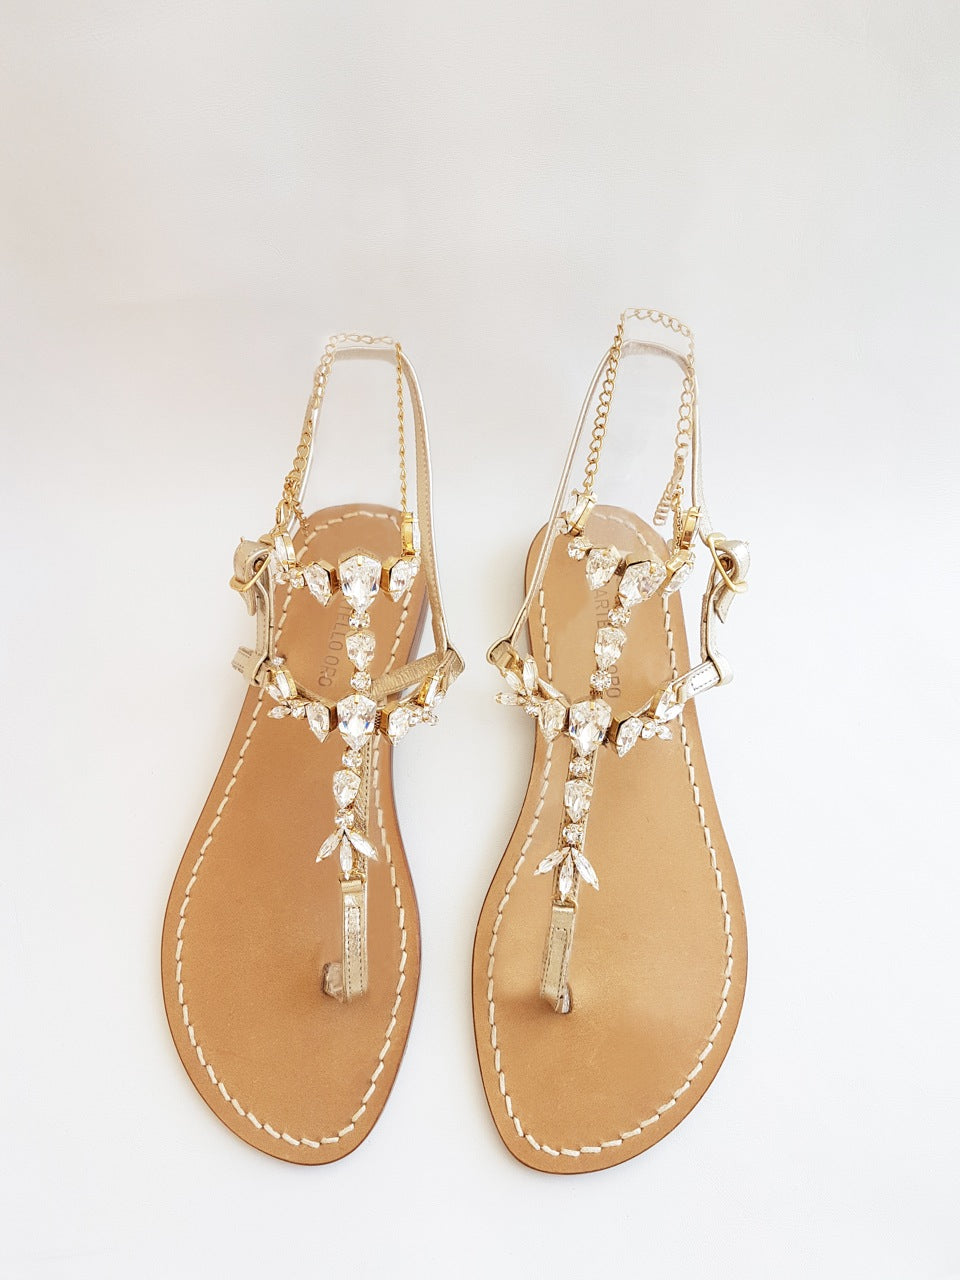 Martello Oro, Crystal sandals, Bridal sandals, party sandals, wedding sandals, Swarovski sandals